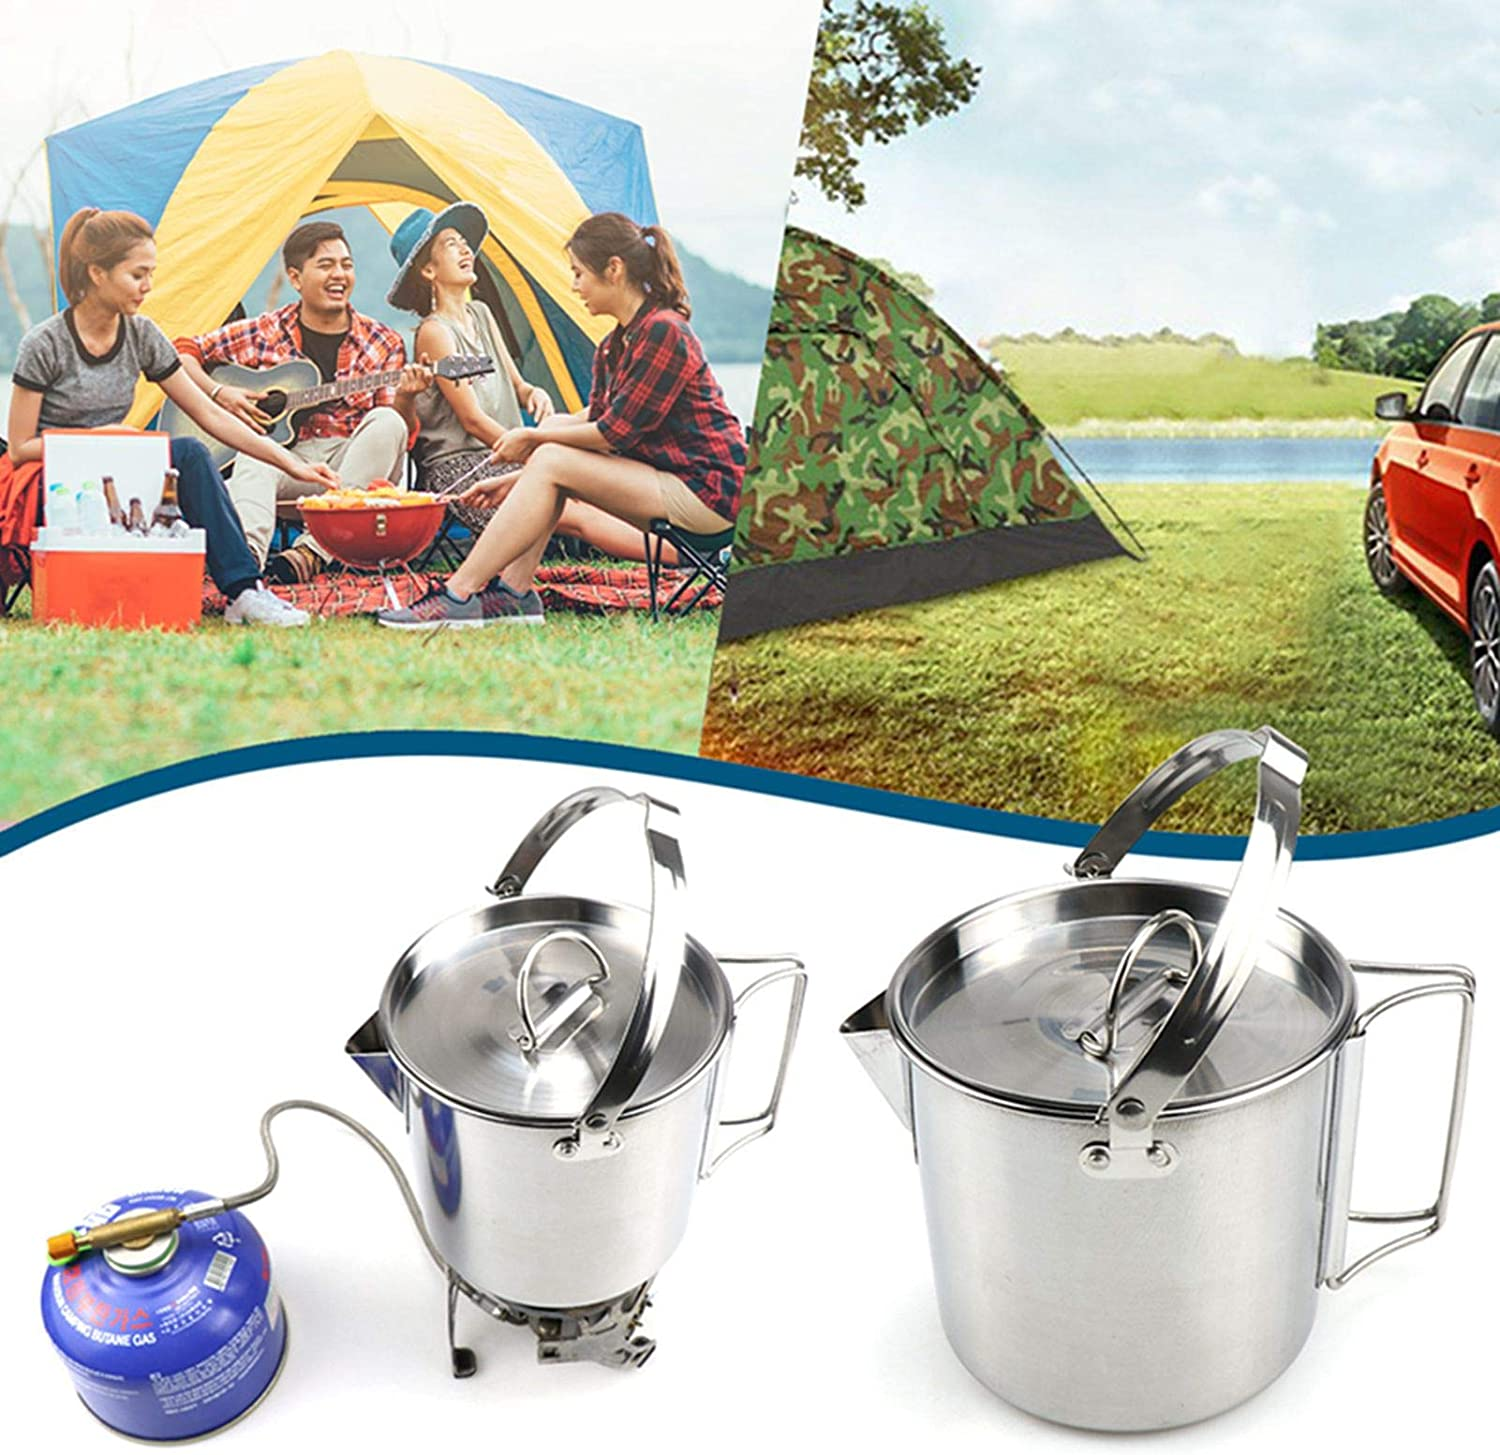 Sweet/&rro17 0.75L Camping Water Cup with Tripod Grill Set Hanging Barbecue with Hook for Camping Hiking Picnic